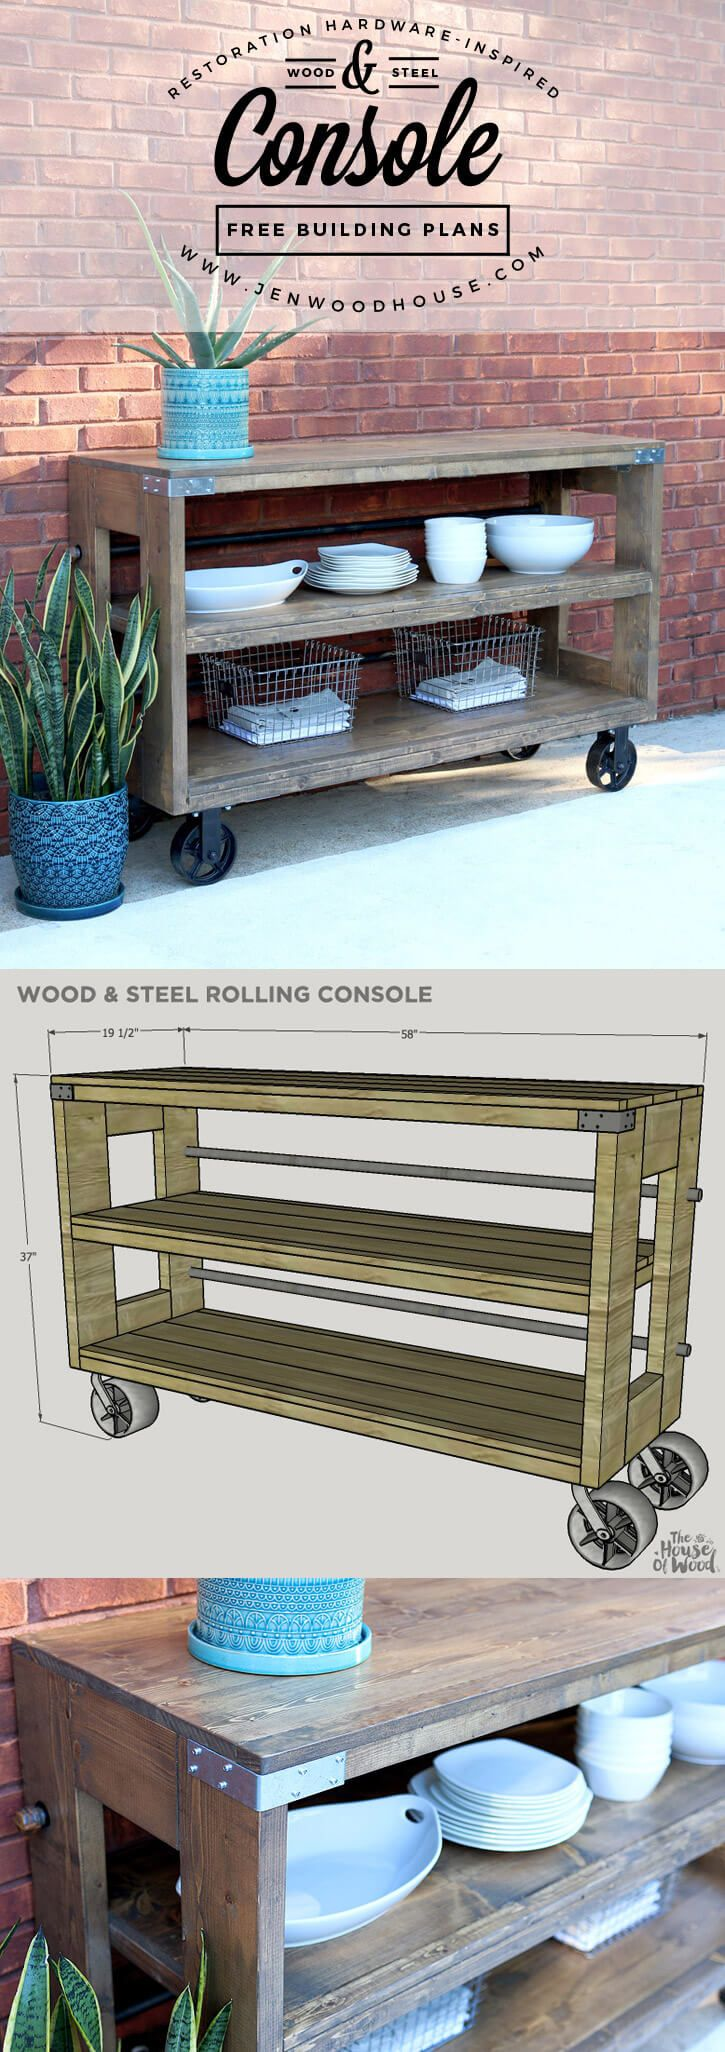 Steel and wood repurposed rolling console home new pinterest